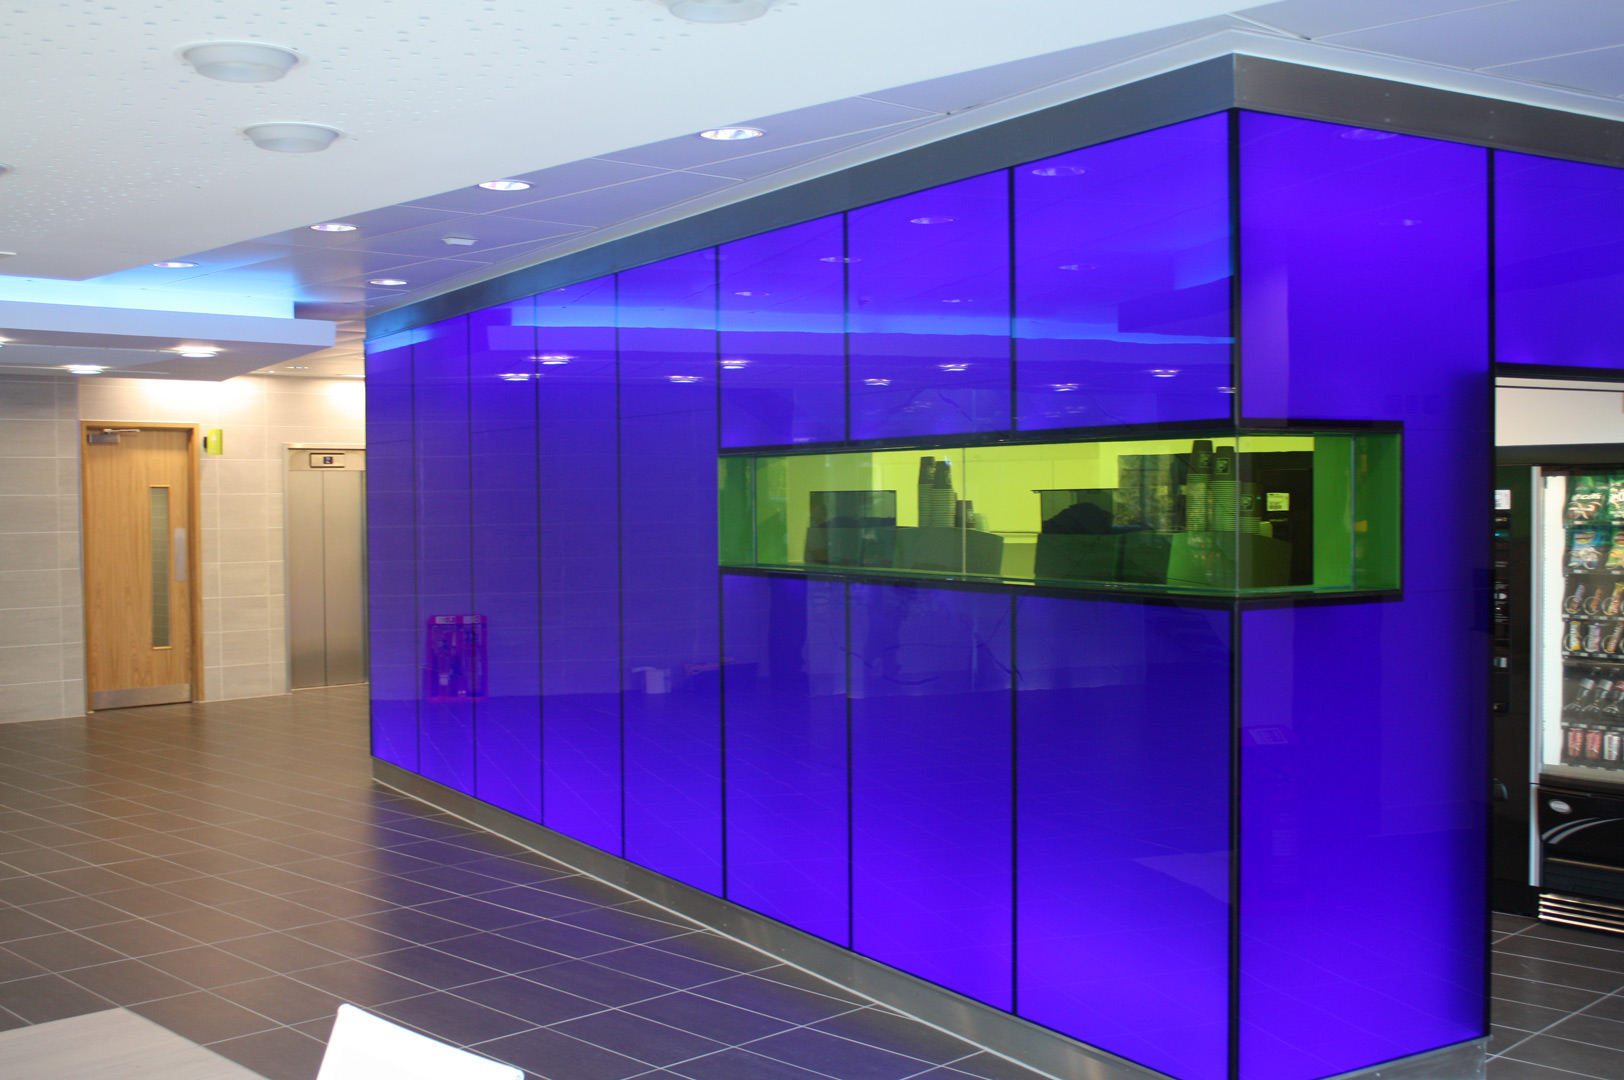 Lighting Installations | Deloitte | Light Lab